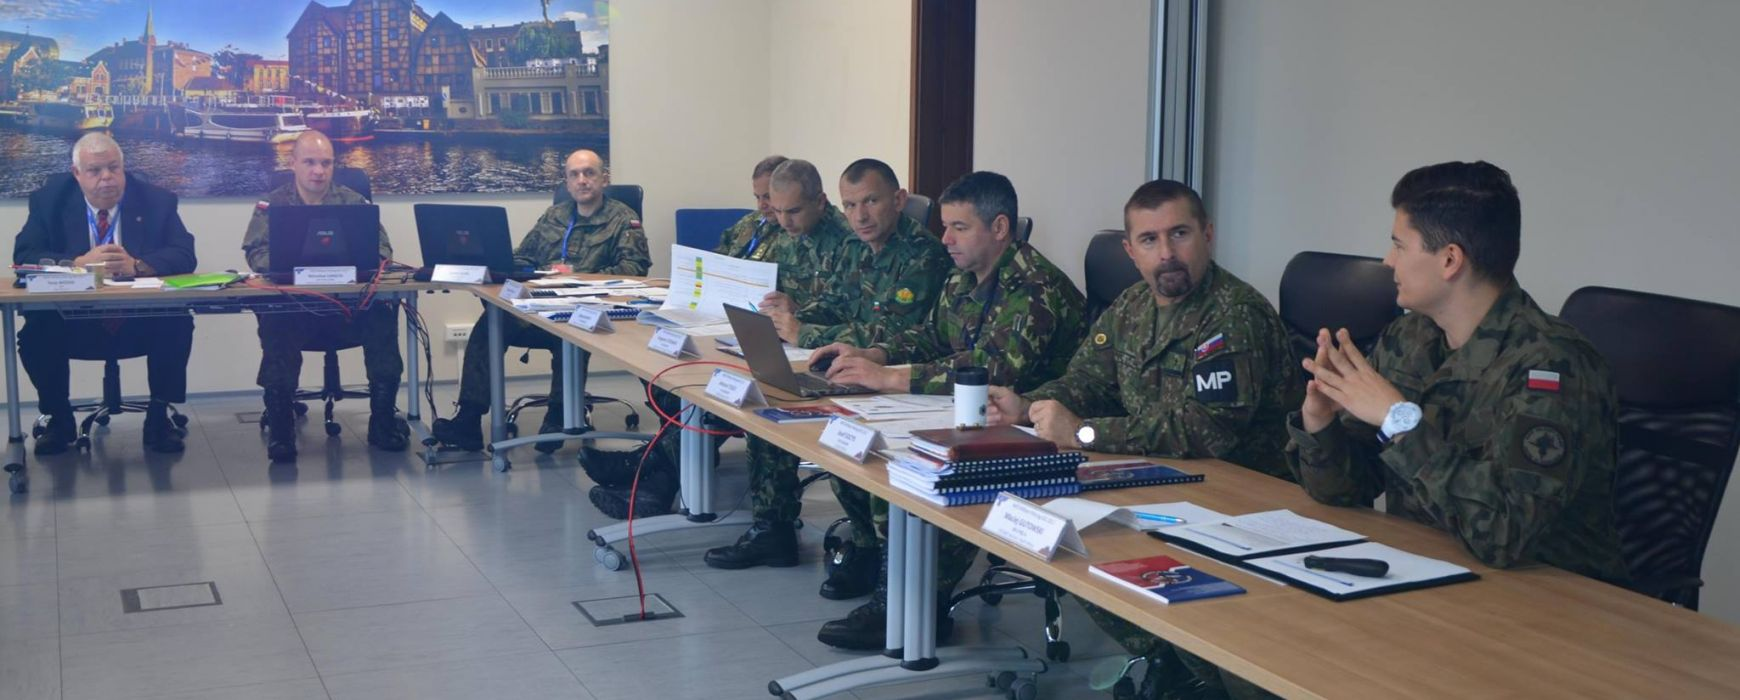 The 2nd NATO Military Policing Annual Discipline Conference